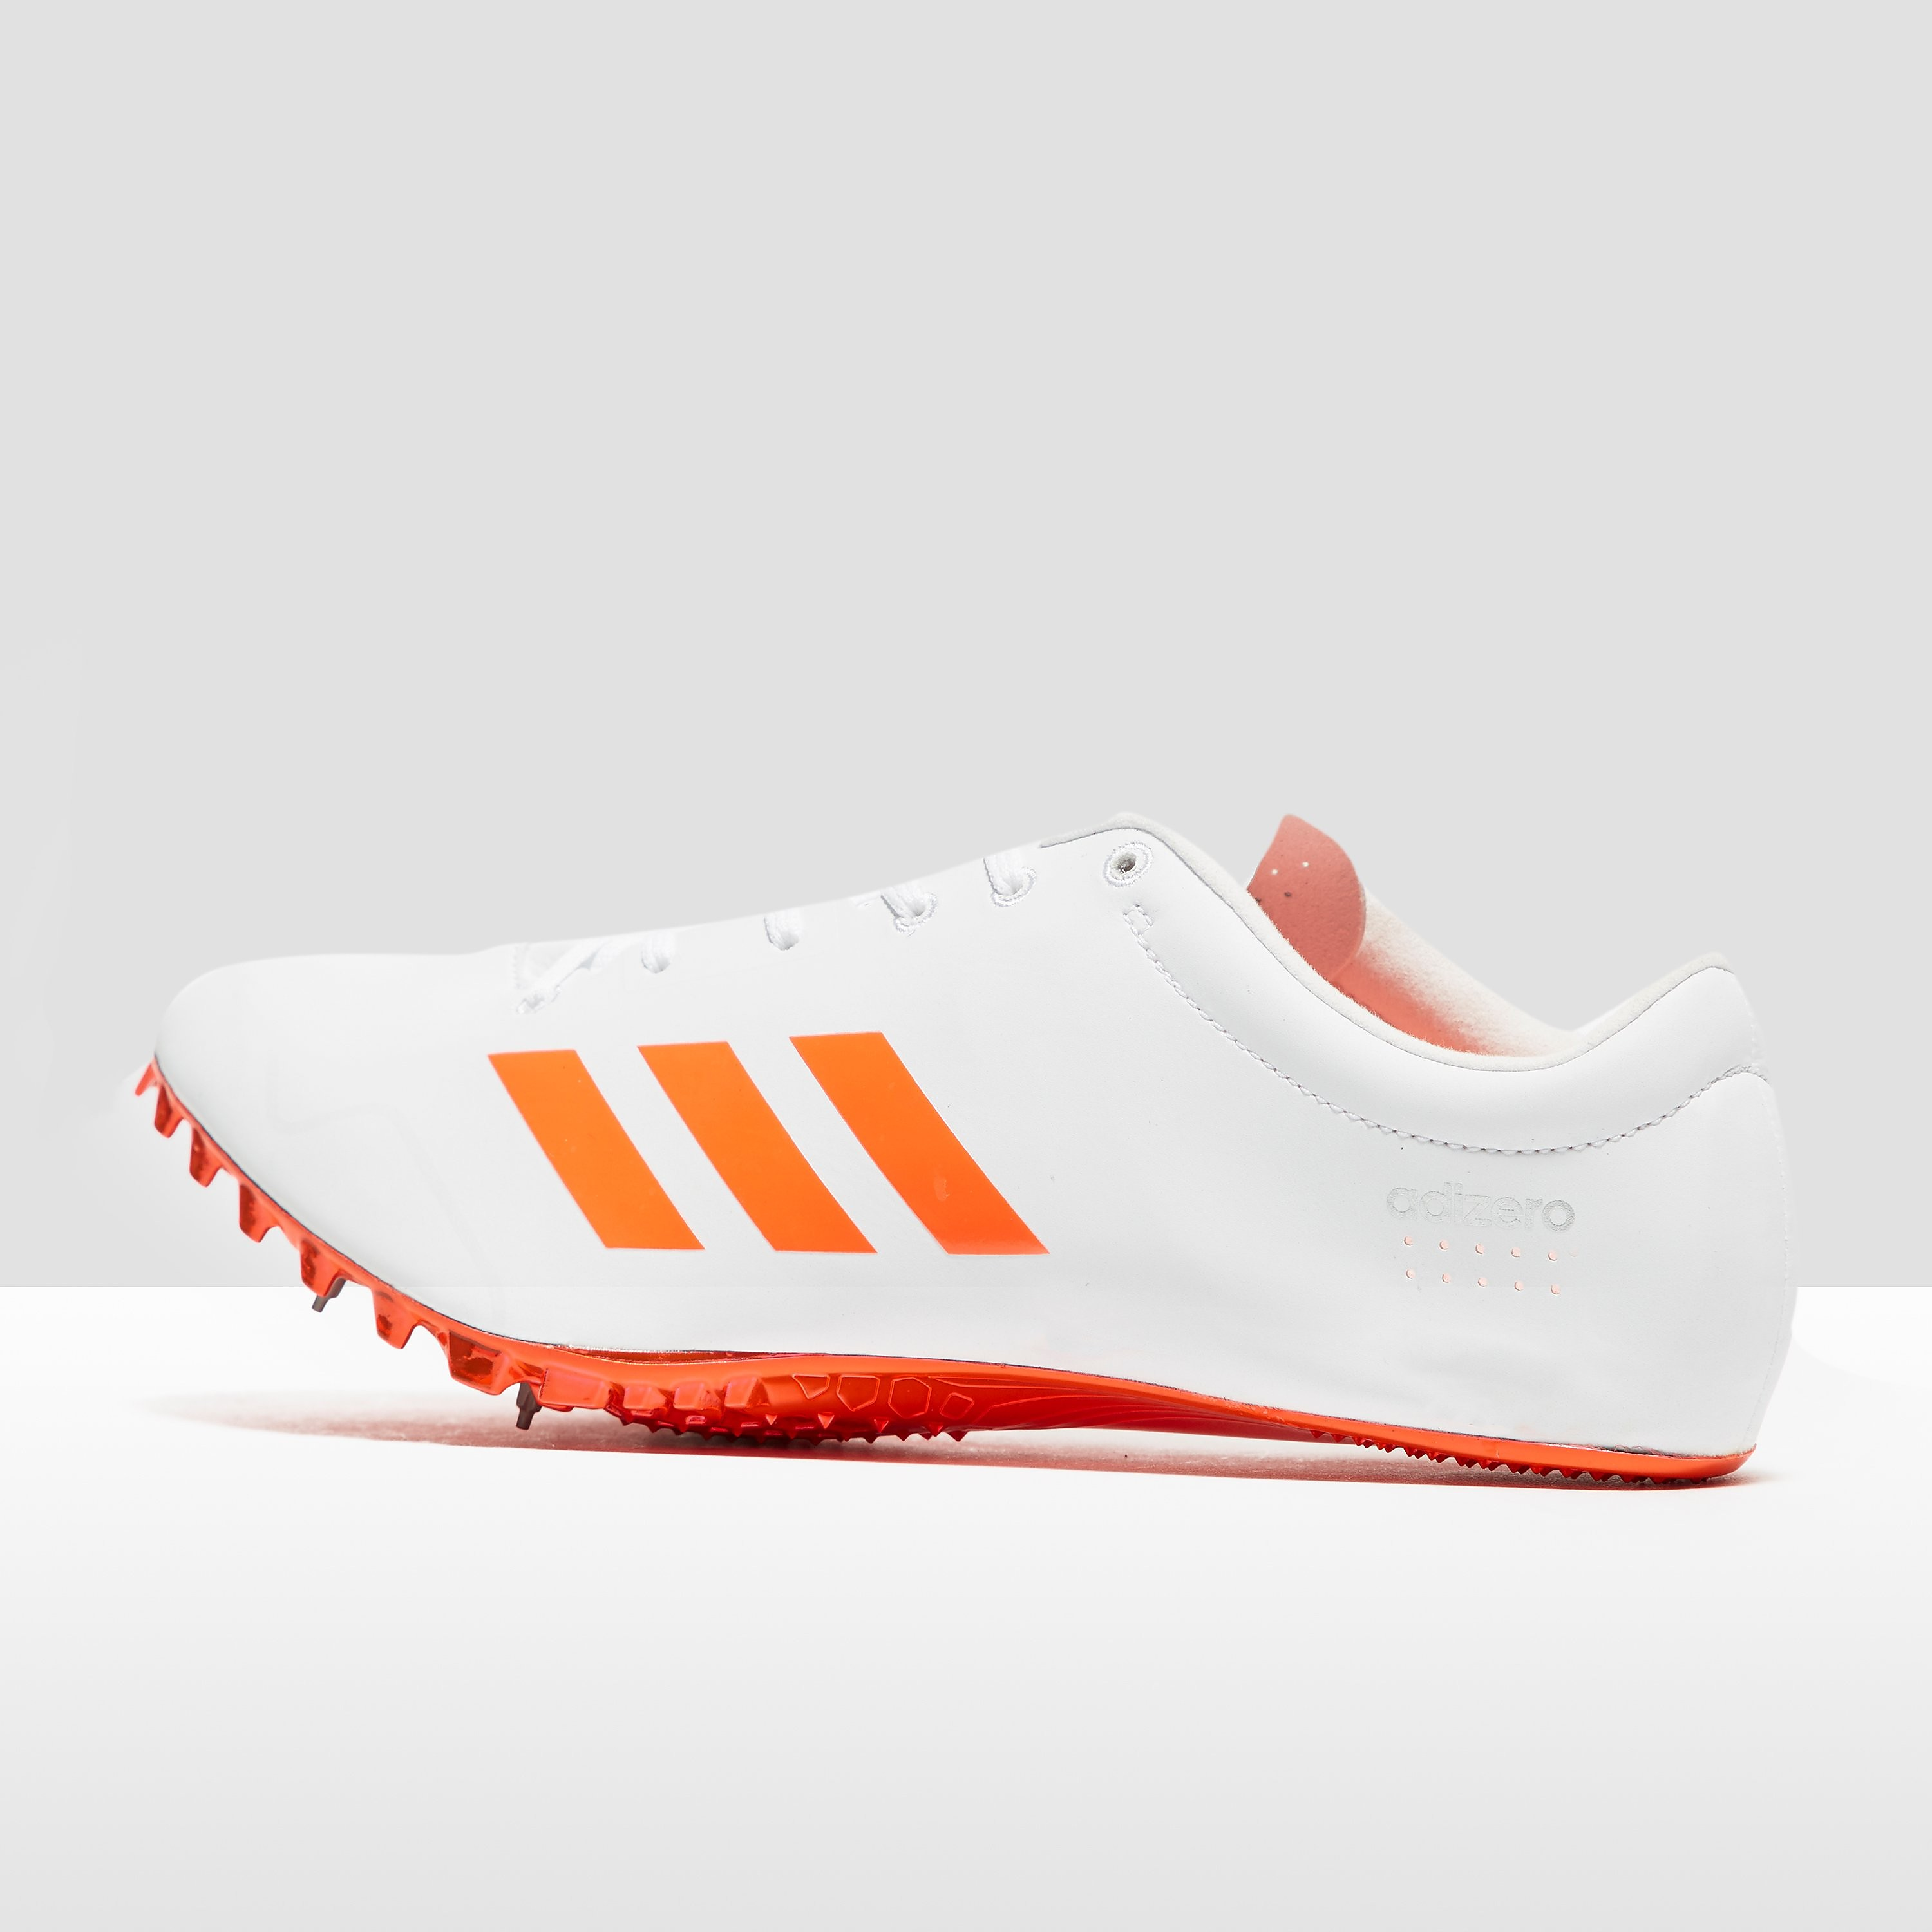 adidas Adizero Prime Men's Sprint Spikes